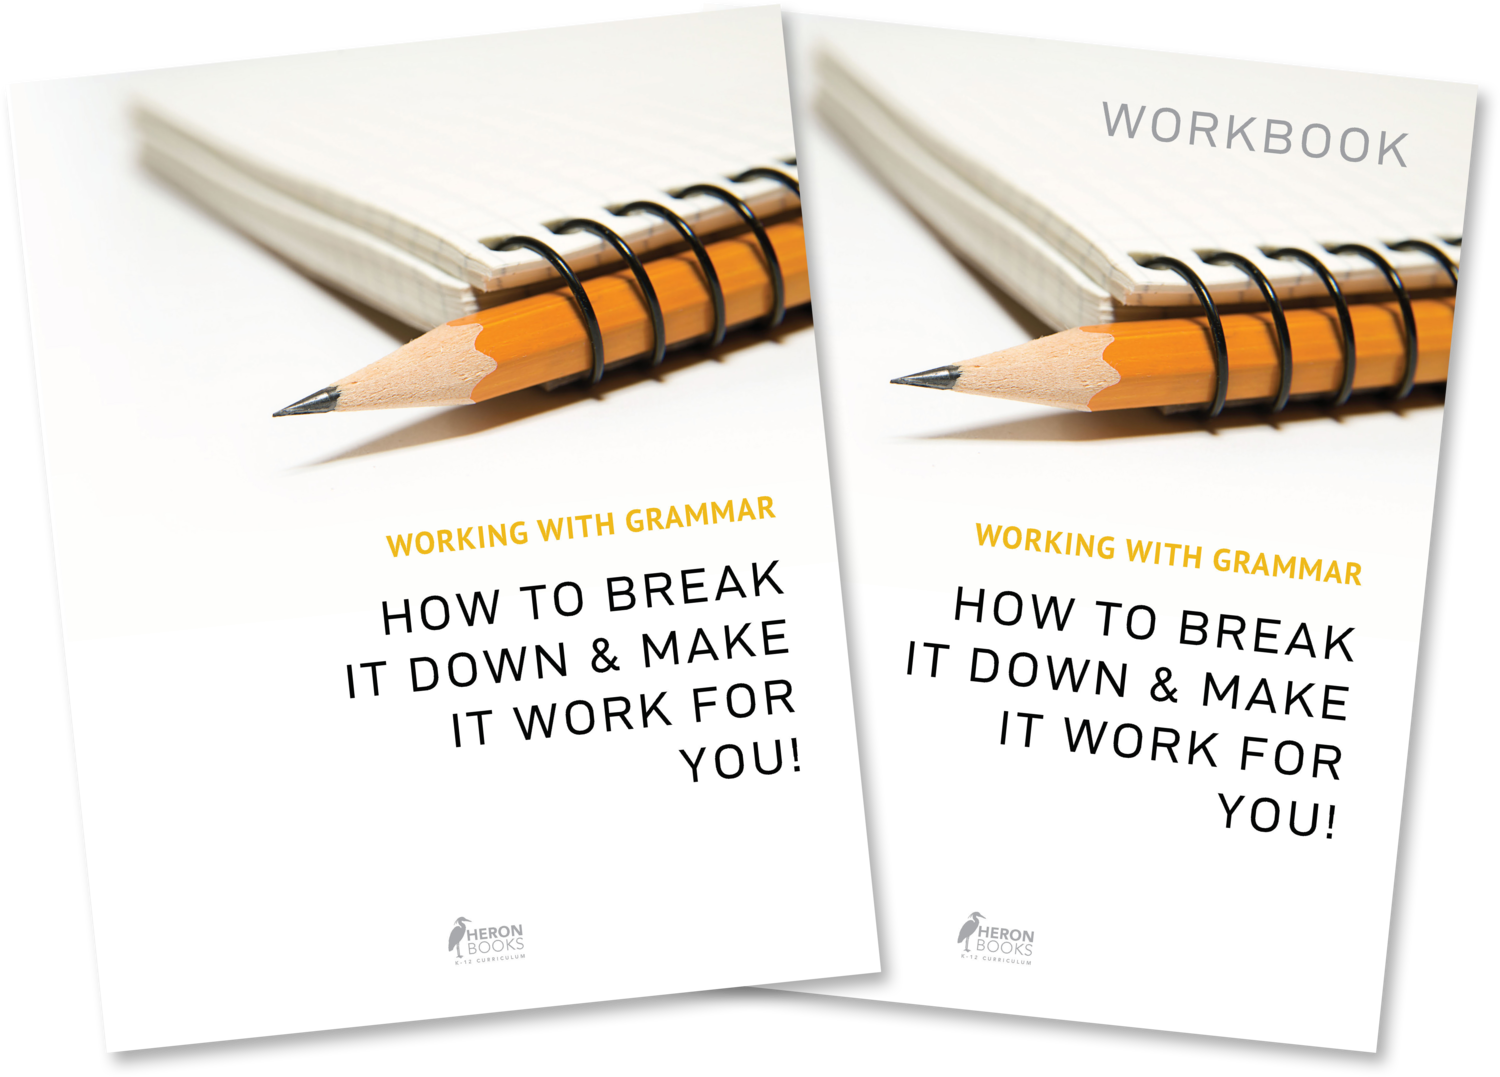 Working With Grammar - Book and Workbook